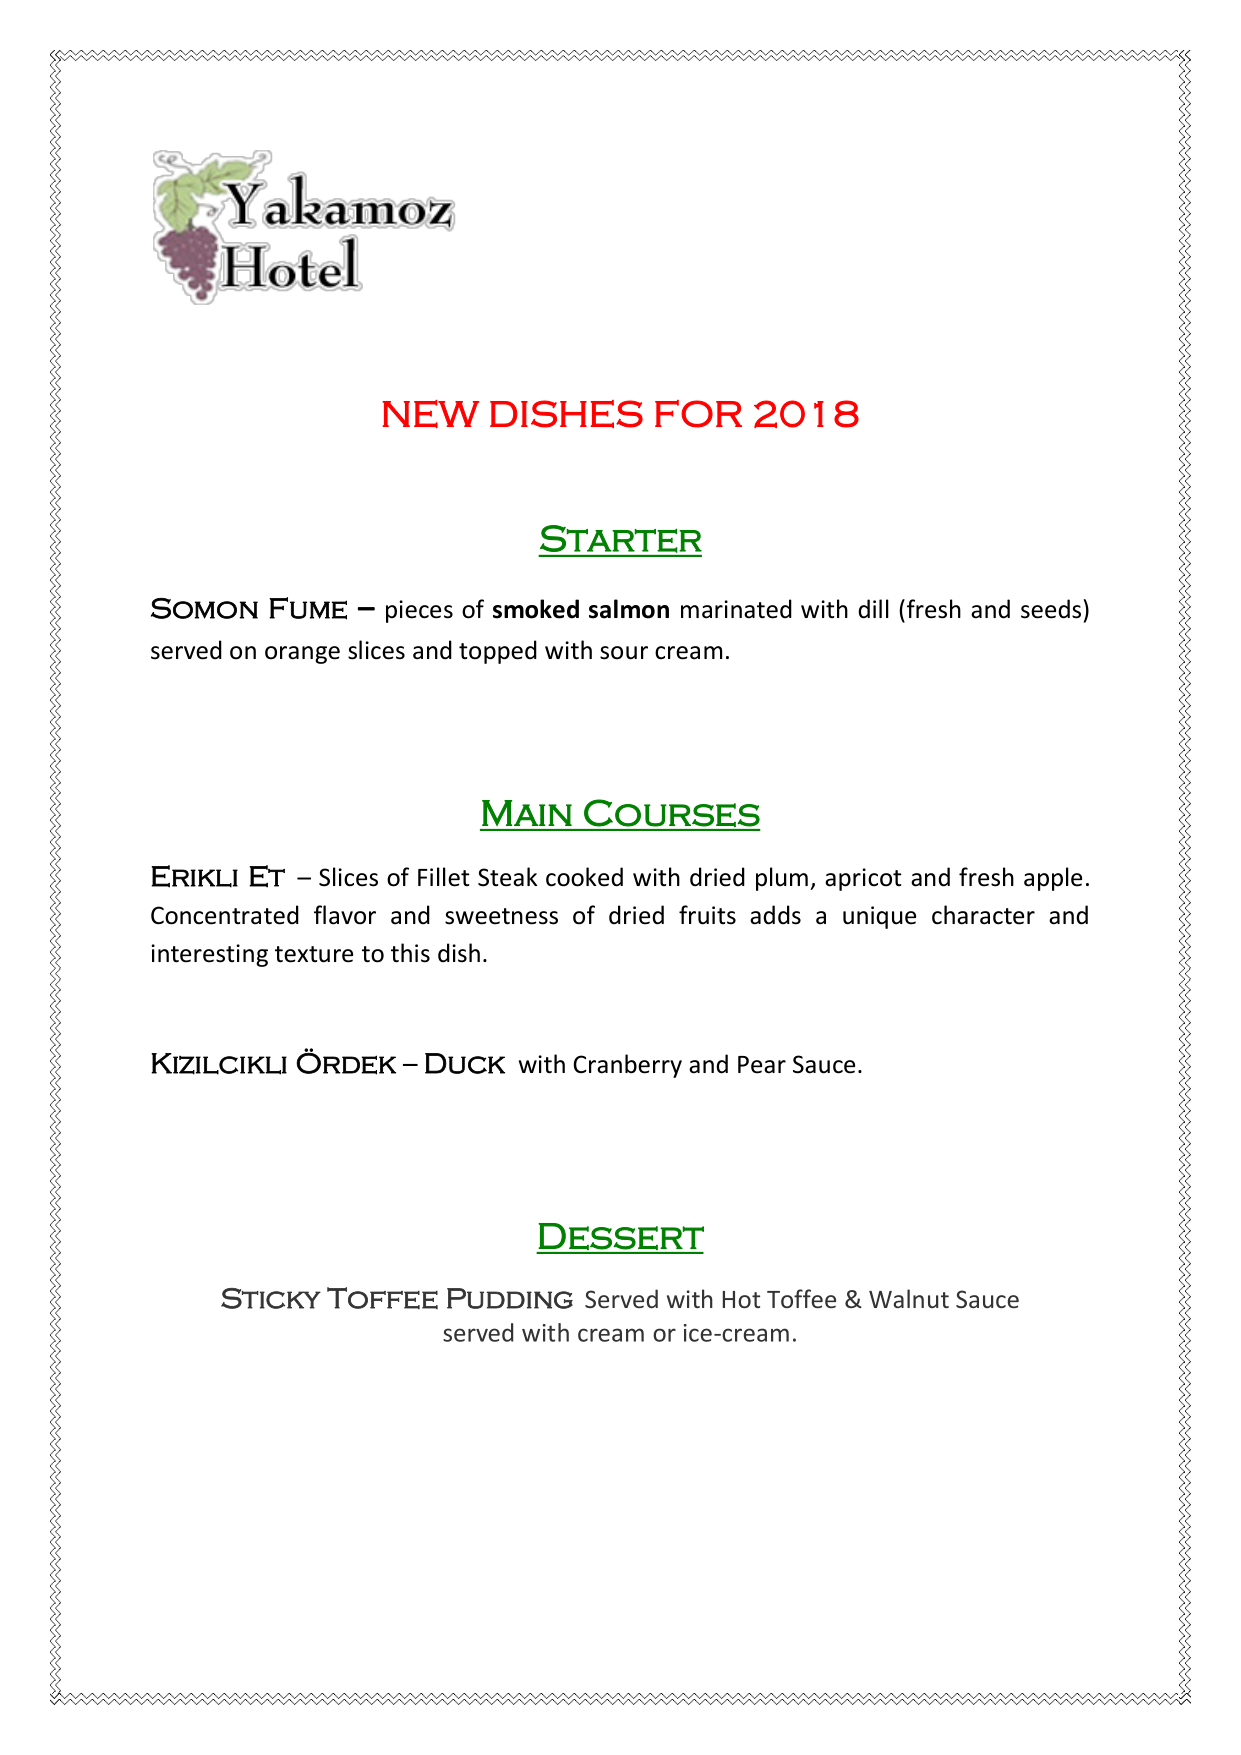 New Dishes For 2018